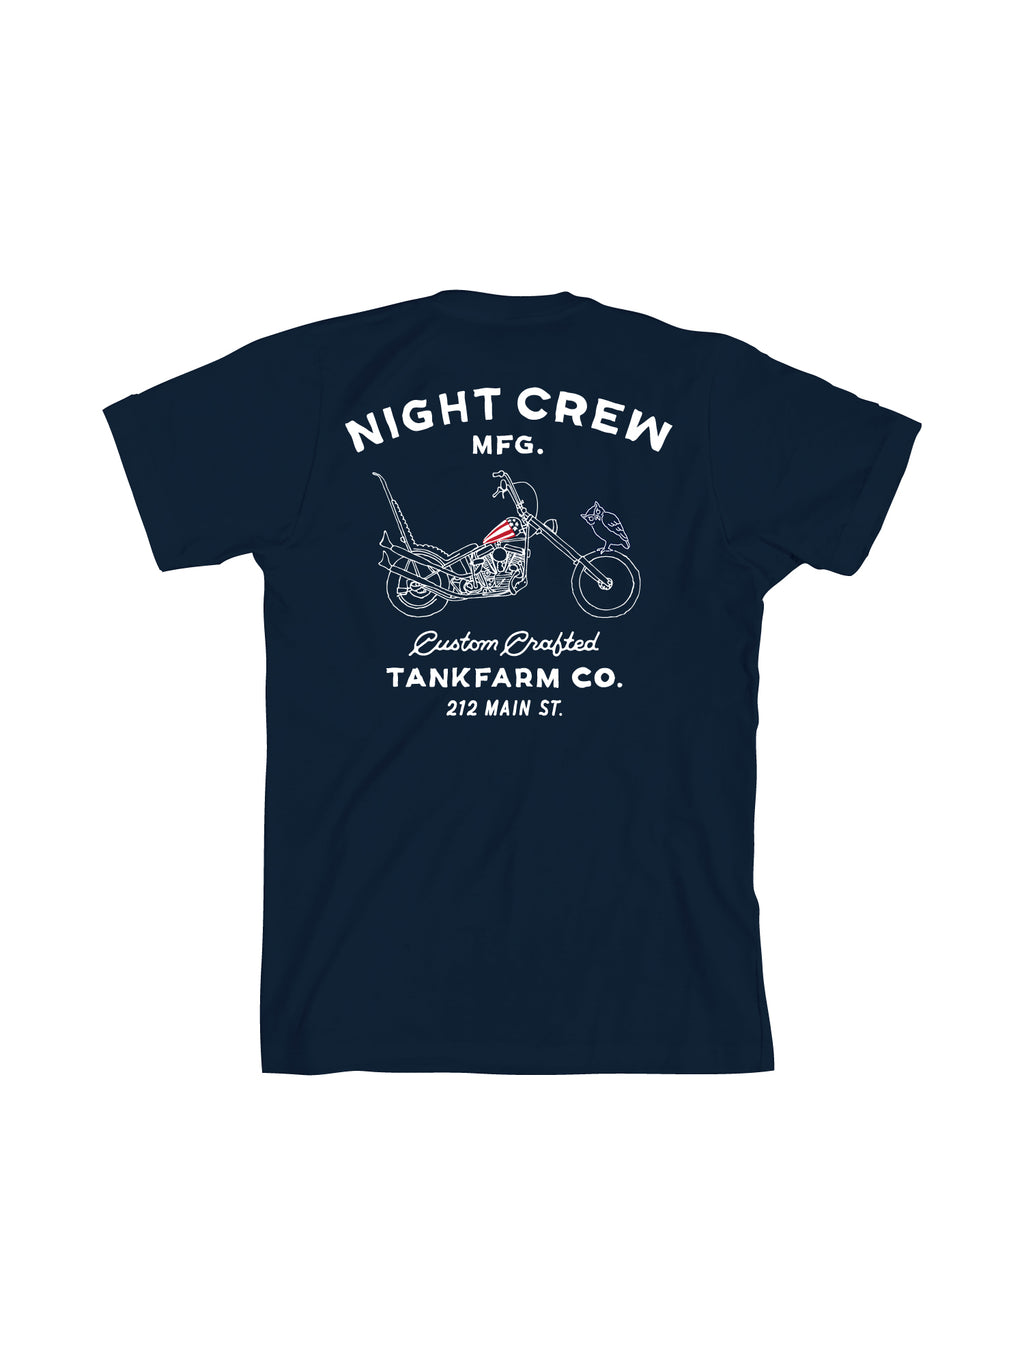 NIGHT CREW - NAVY - Tankfarm & Co.